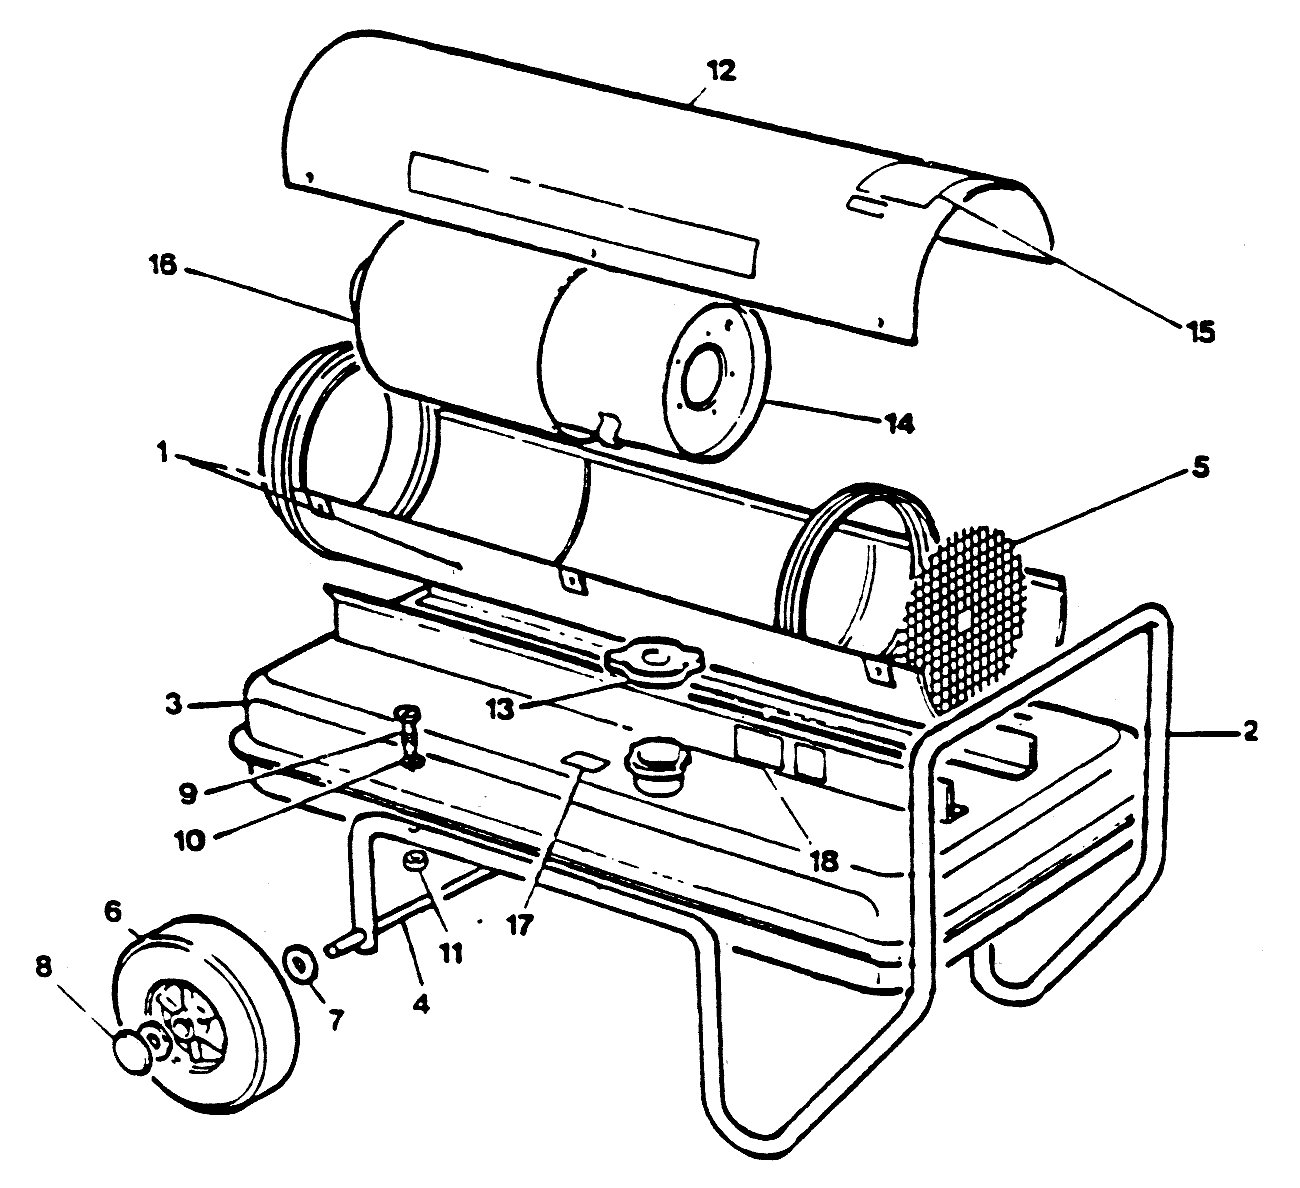 Jetaire D160 Exploded View